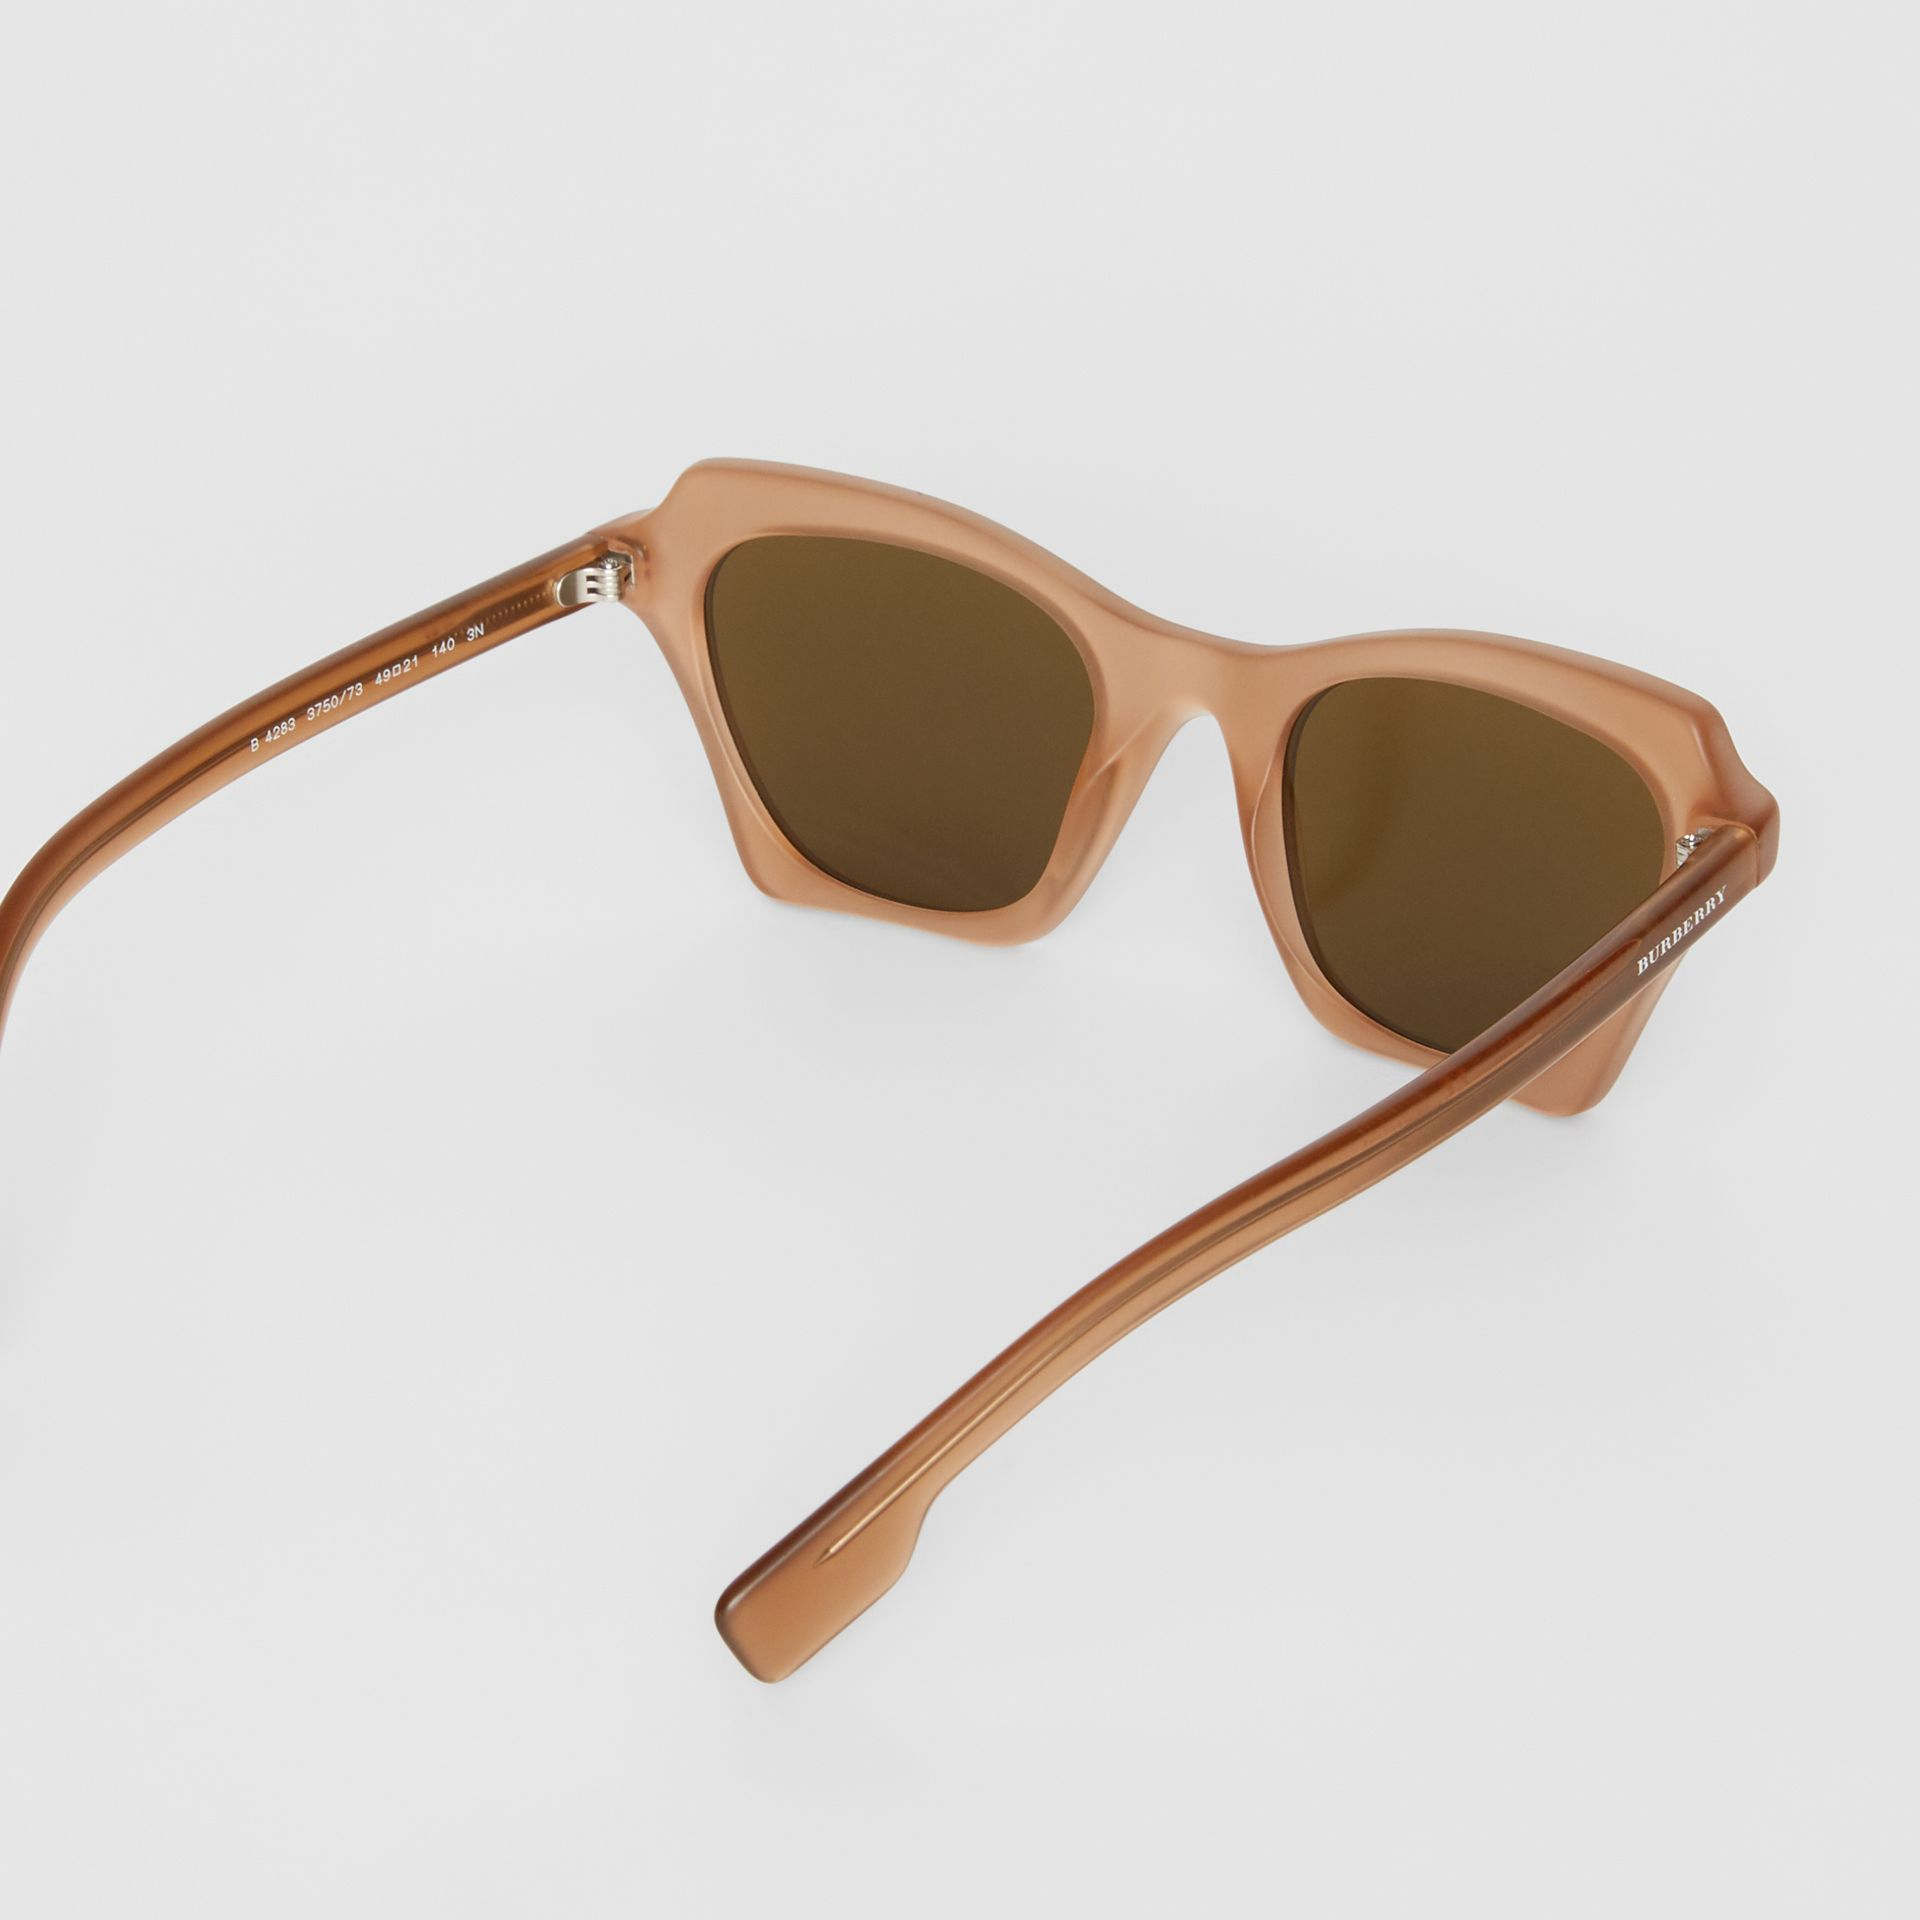 Butterfly Frame Sunglasses in Brown - Women | Burberry - gallery image 4